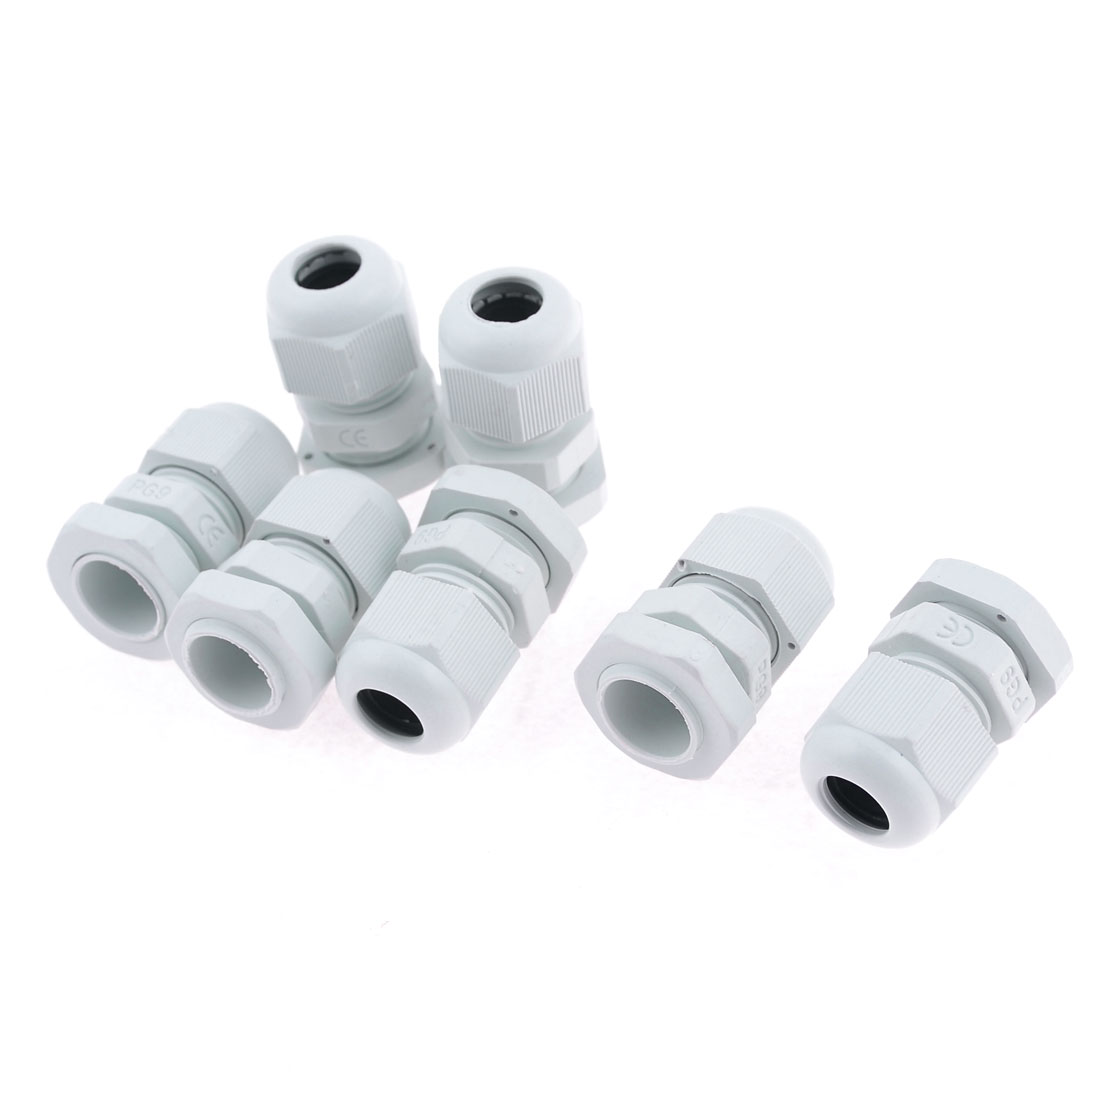 7 Pcs Water Proof PG9 Plastic Cable Glands Fasteners White